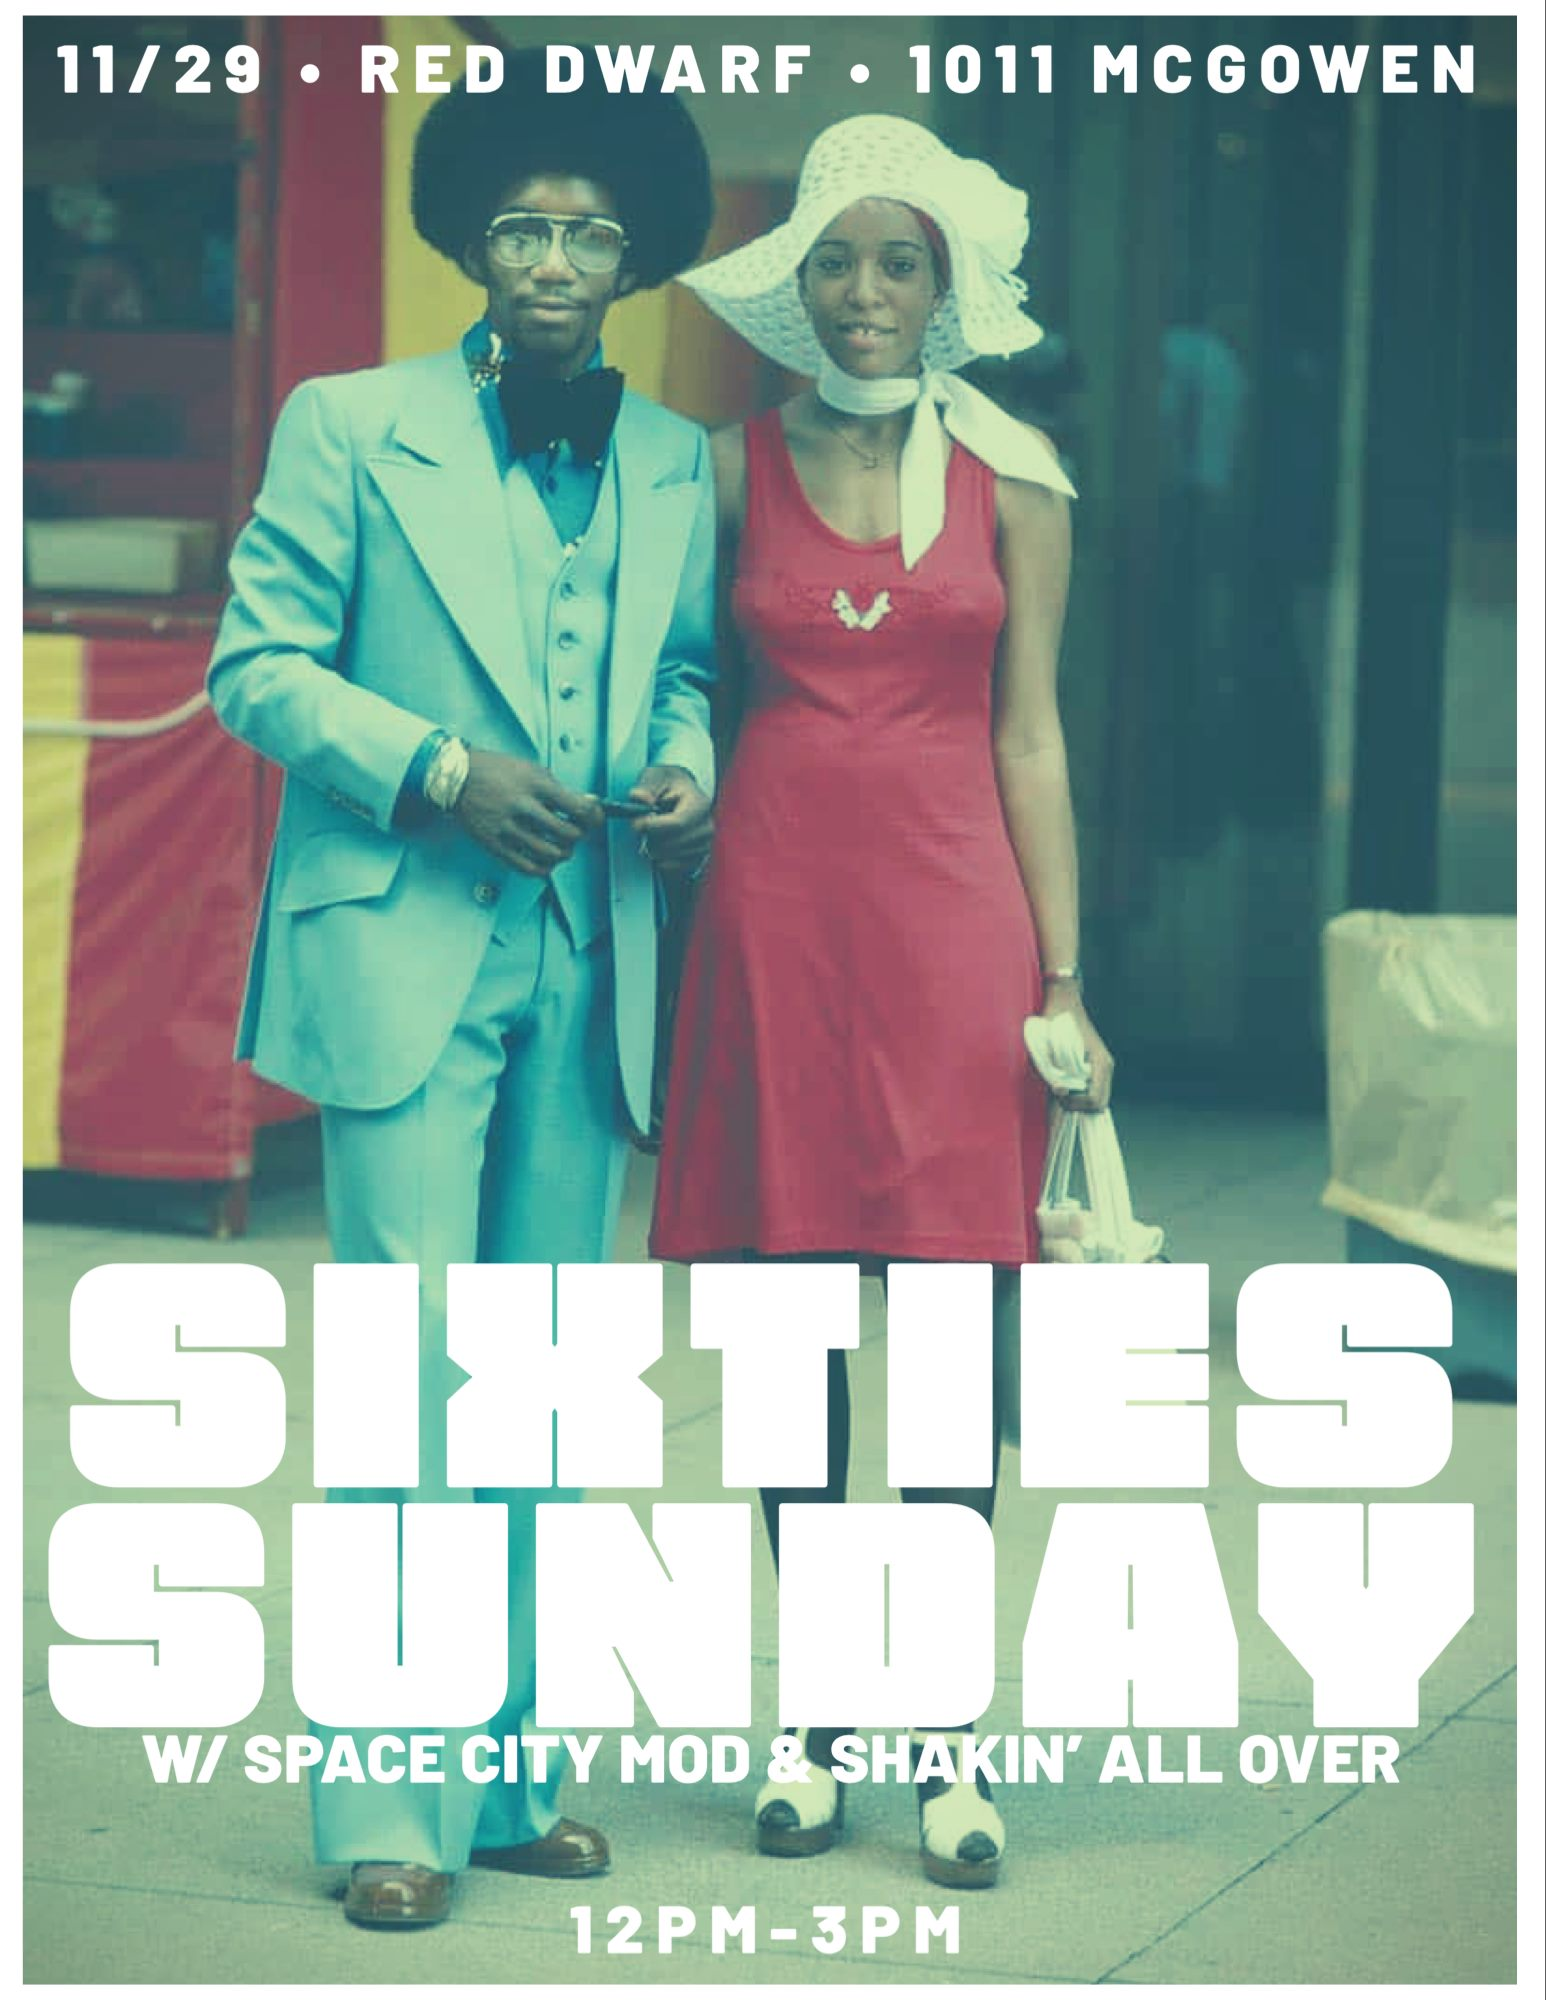 Sixties Sunday Brunch at Red Dwarf HTX